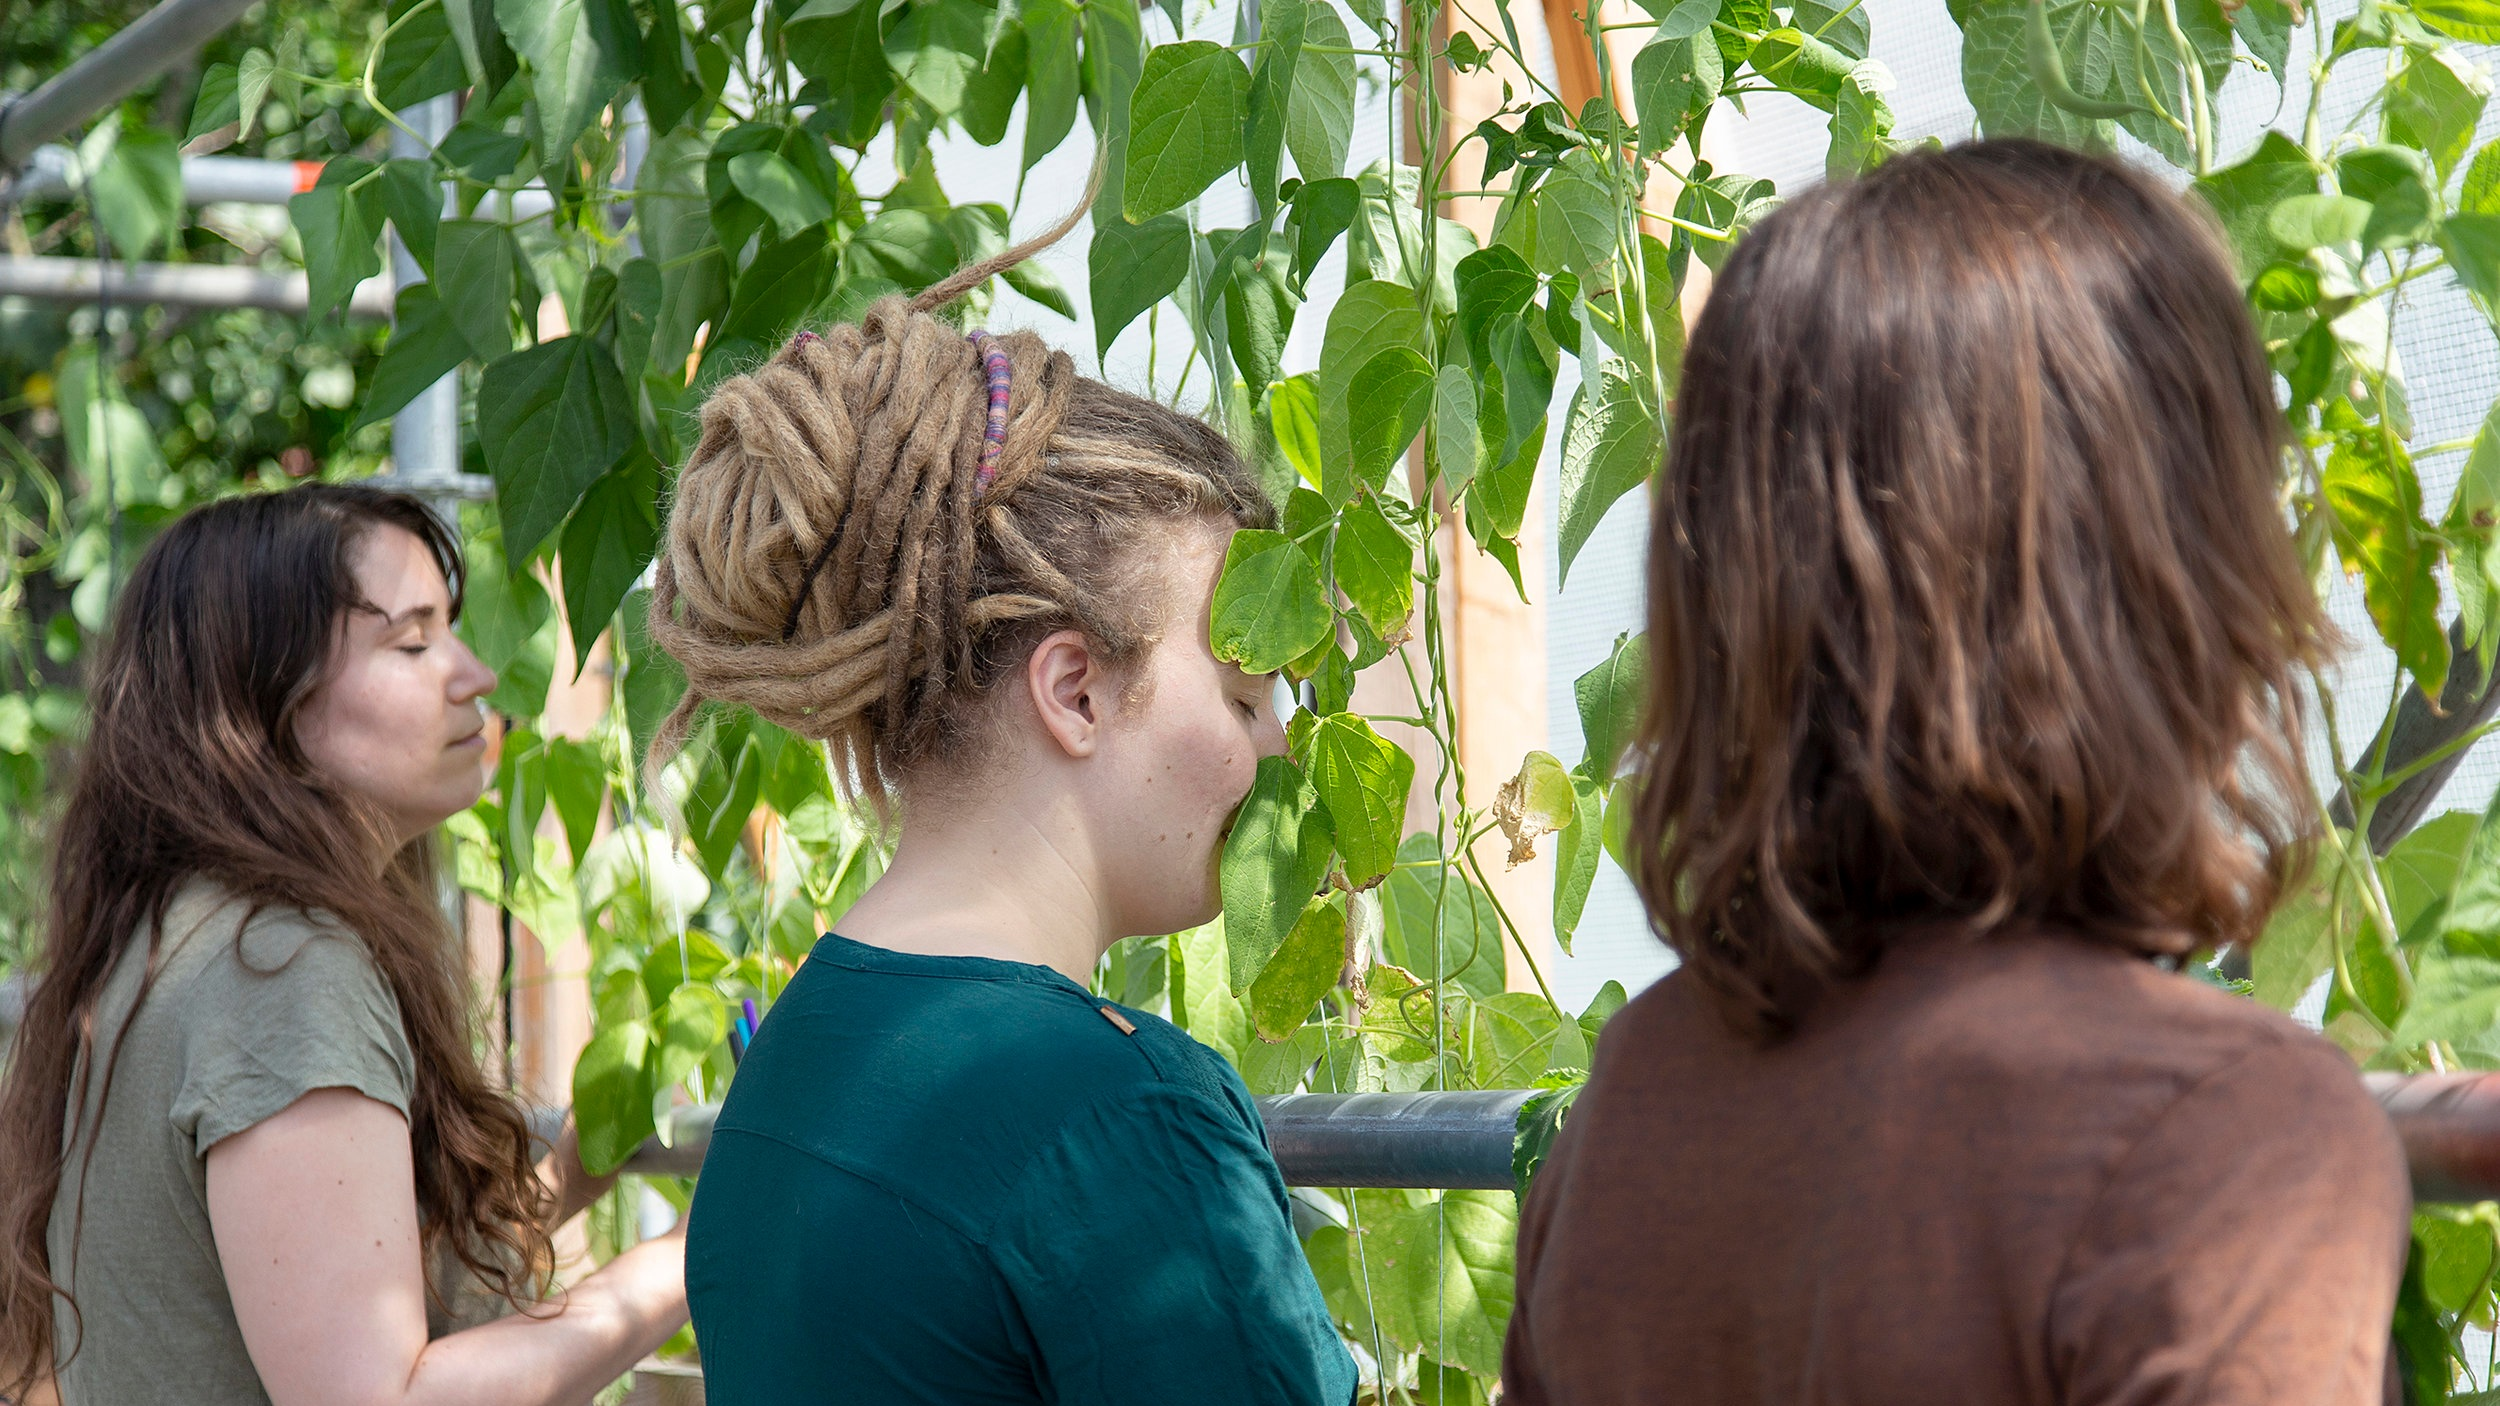 Collaborative breathing with plants at Floating University. Photography: Martina Della Valle